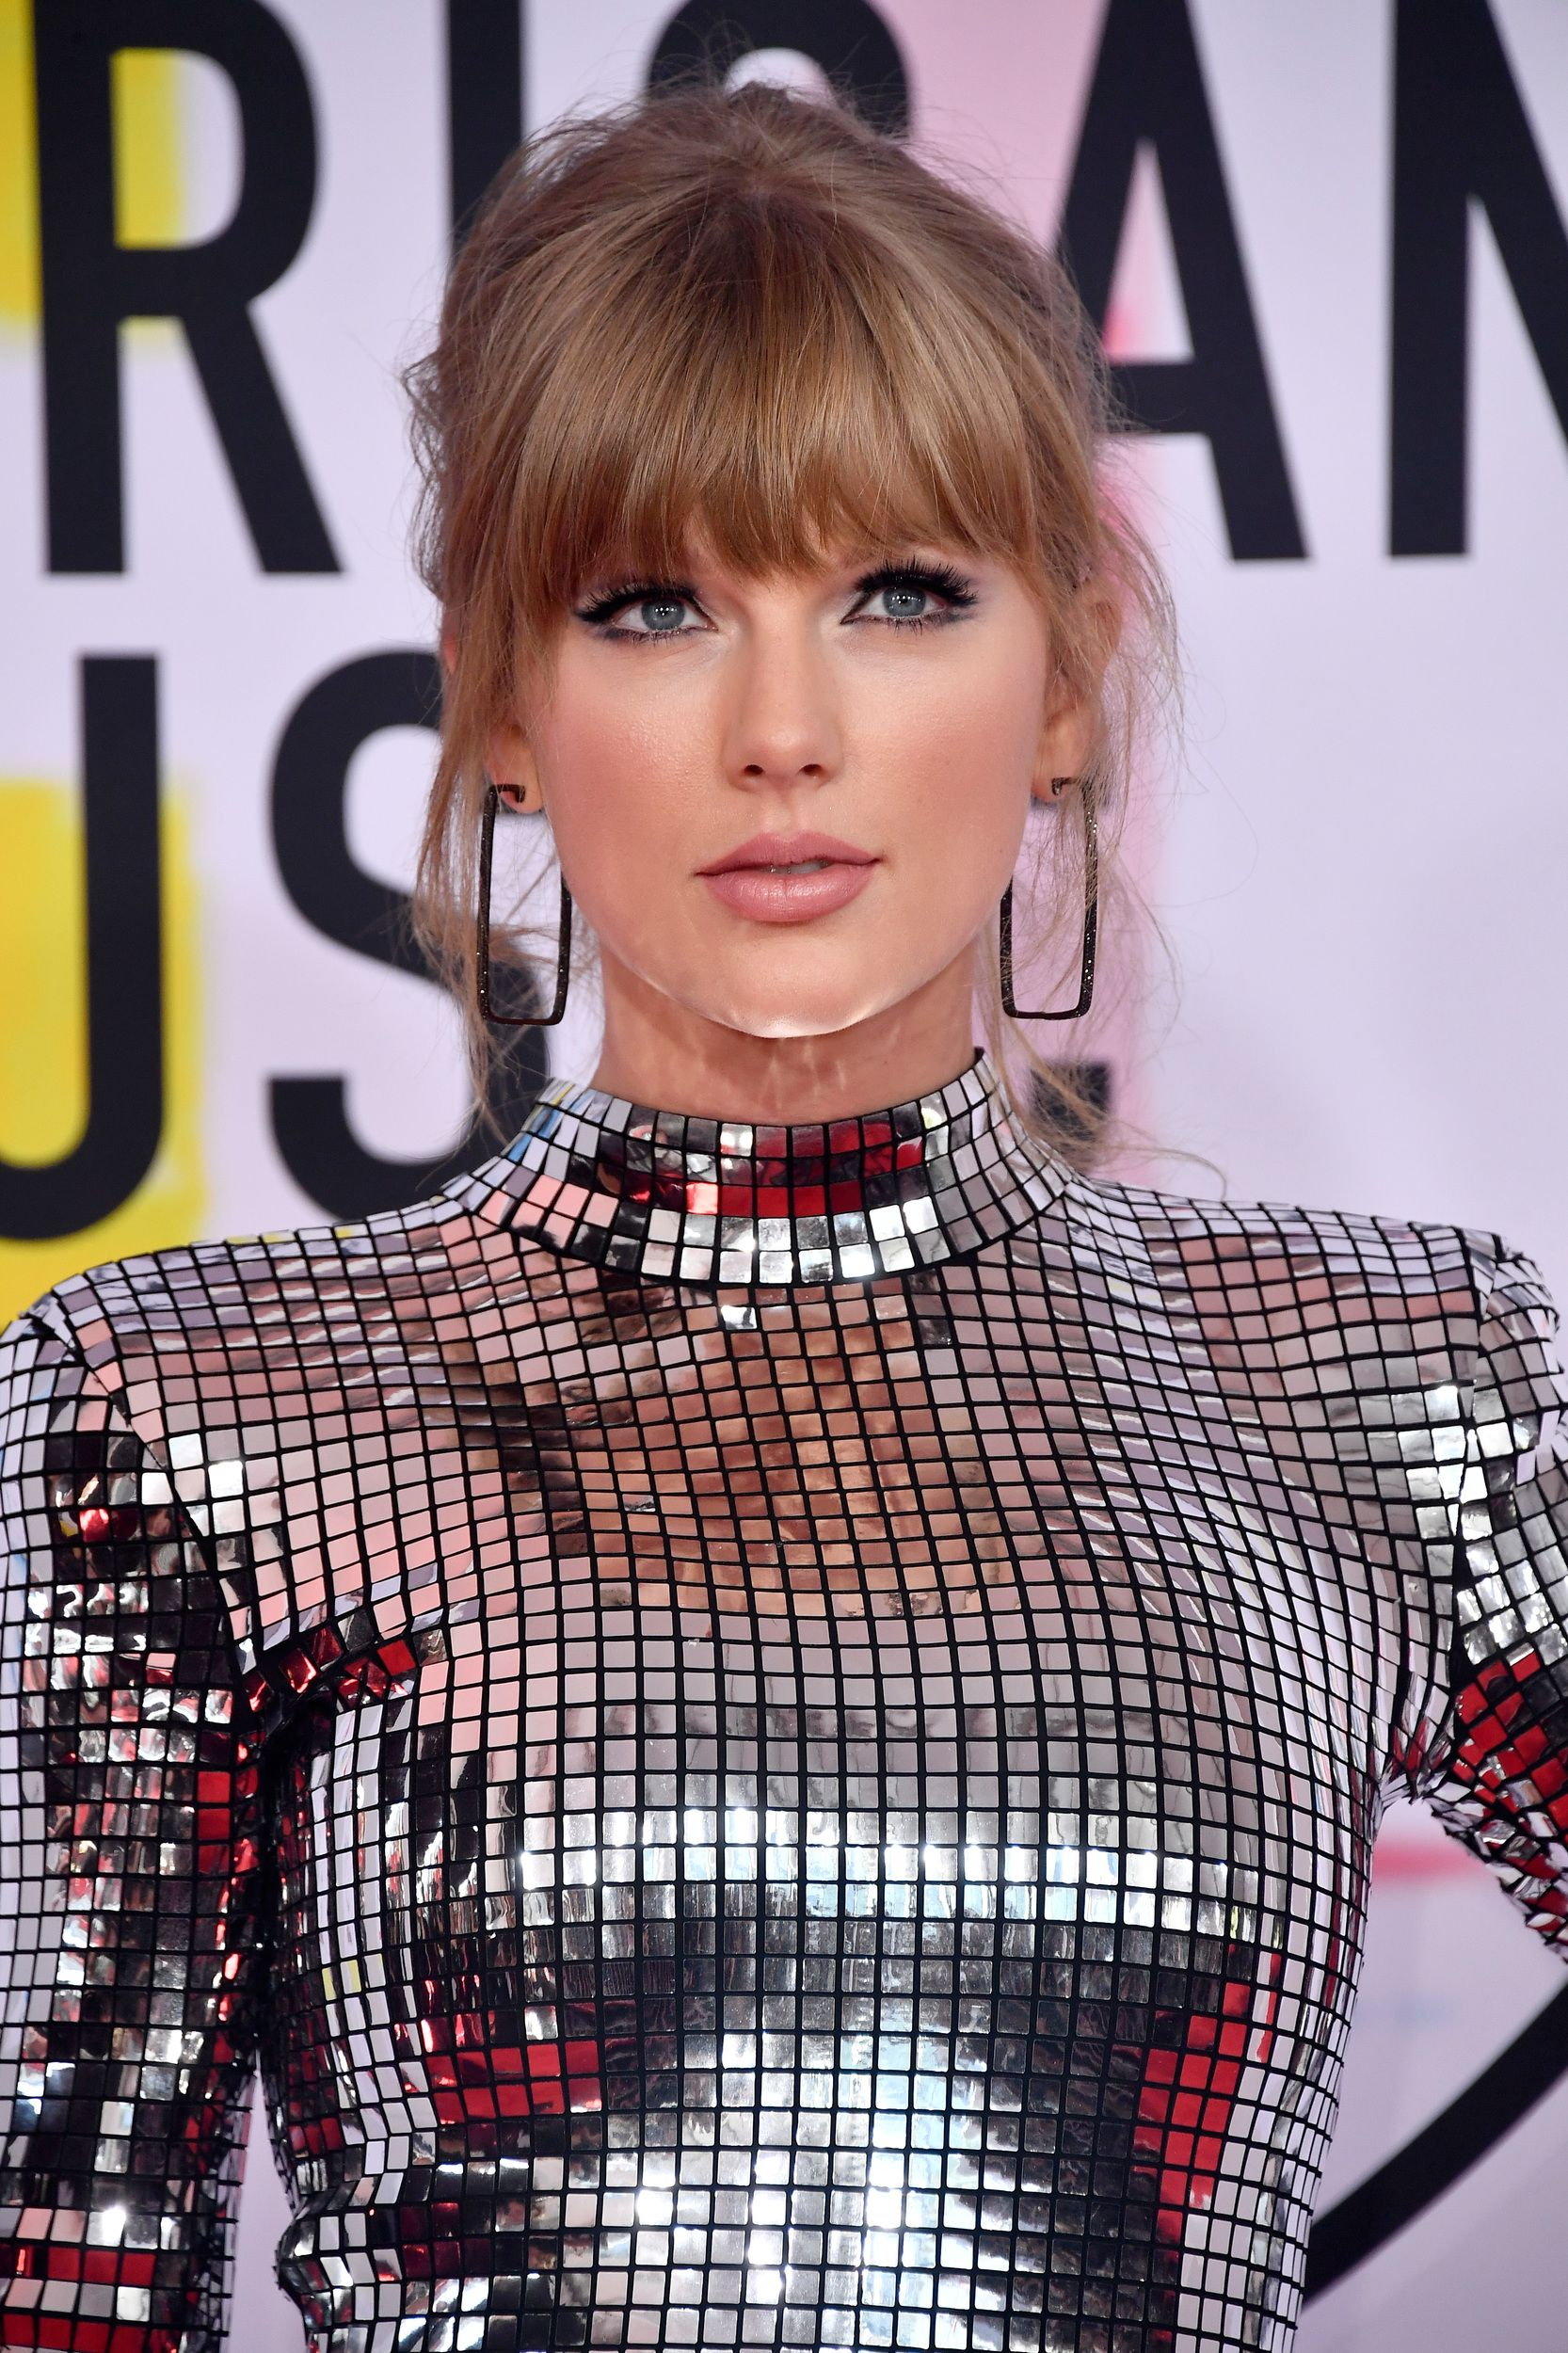 Taylor Swift's AMAs look is edgy, sexed-up and oh-so-silver